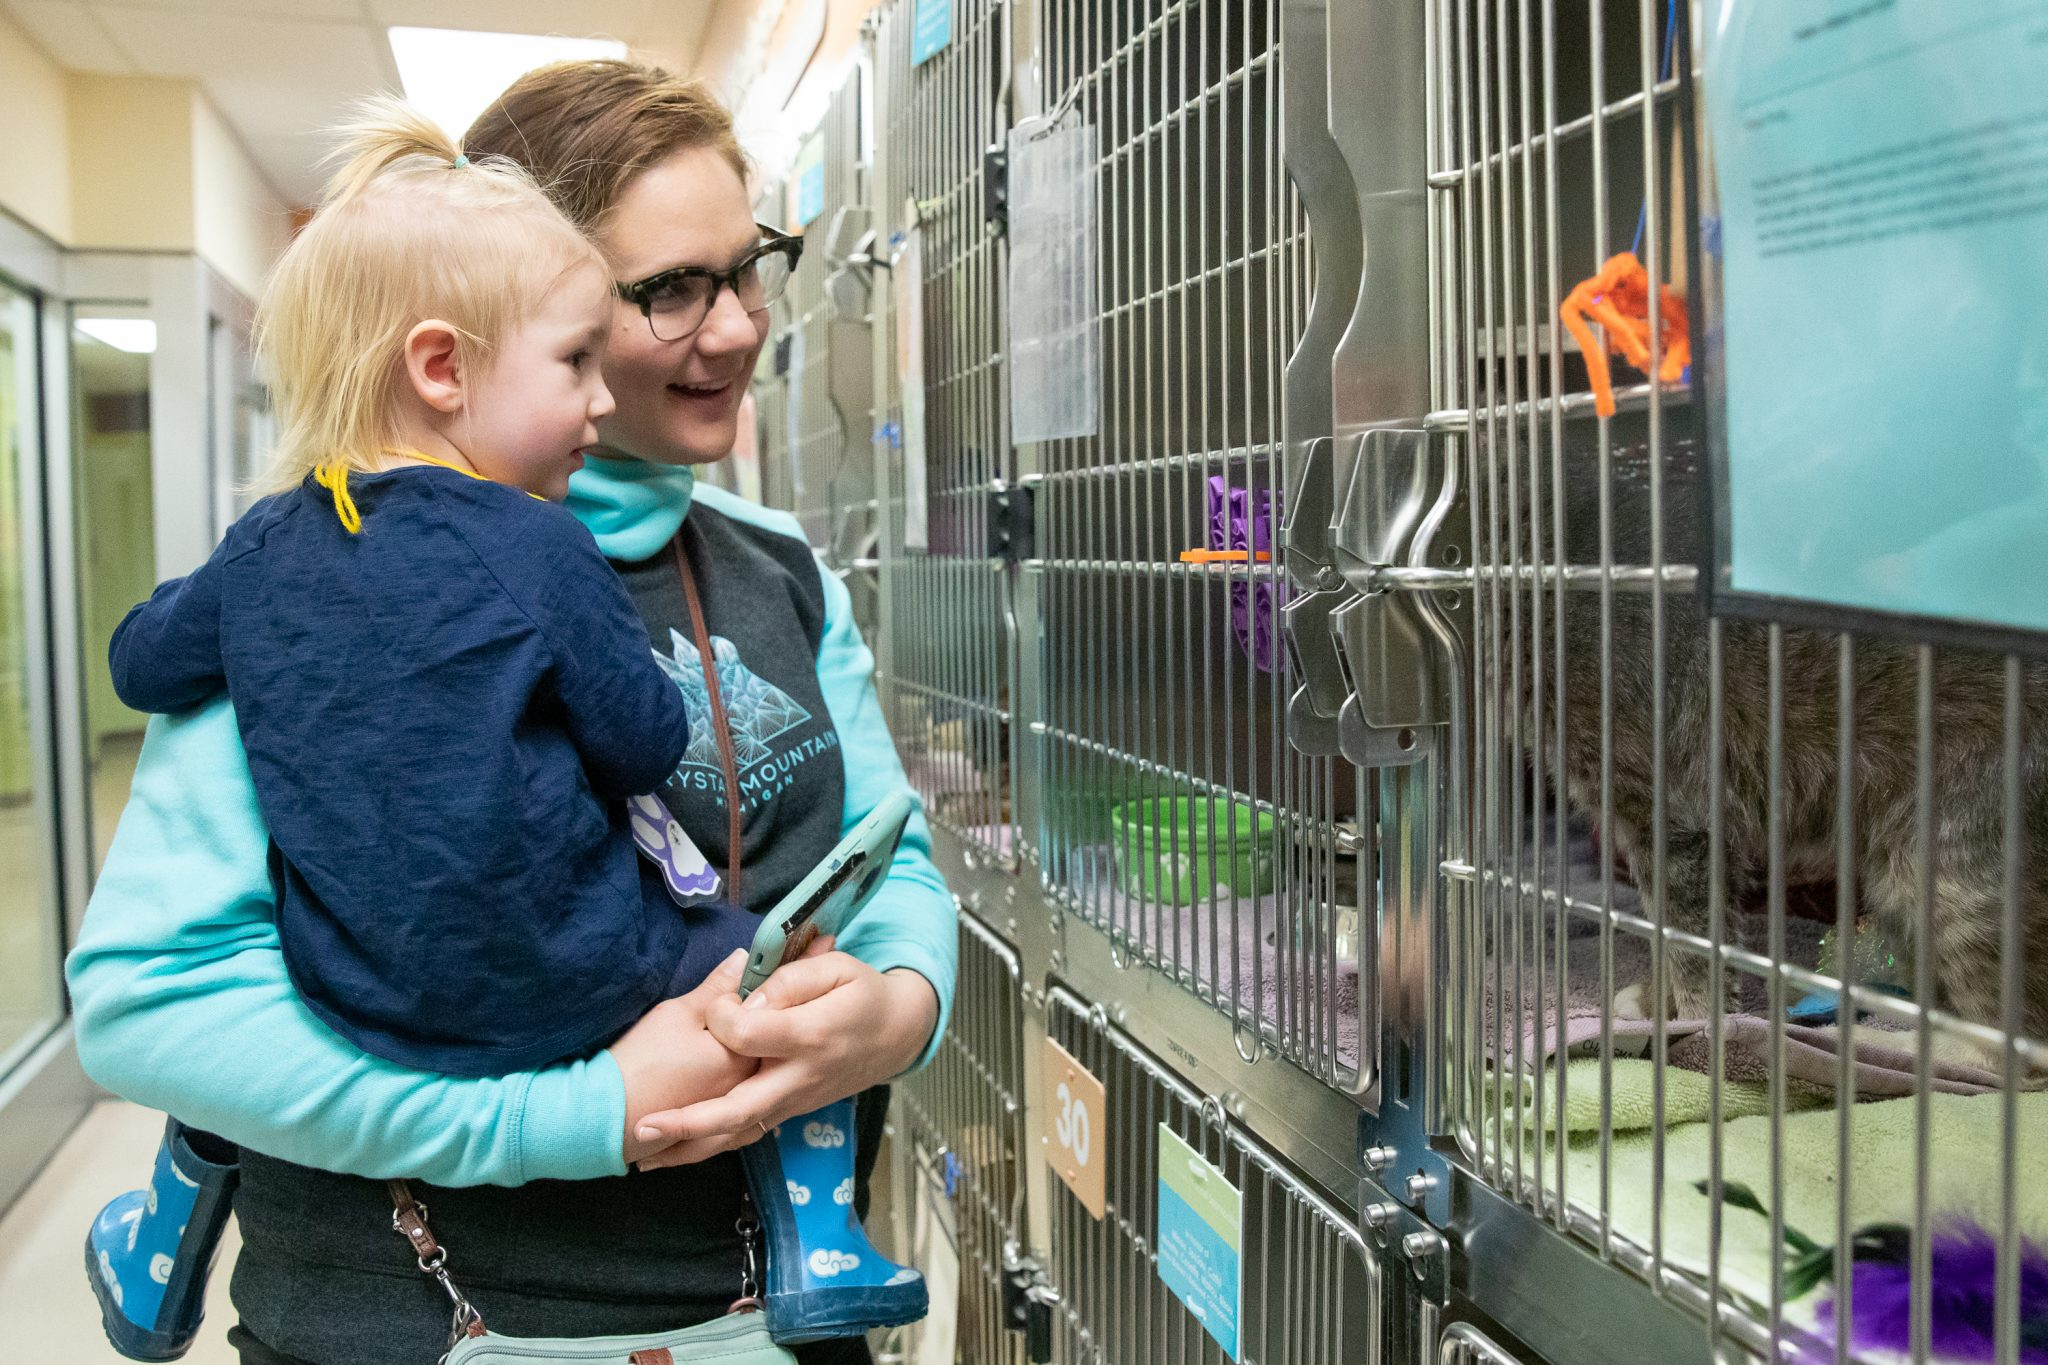 Mom and child looking in a kennel at HSHV